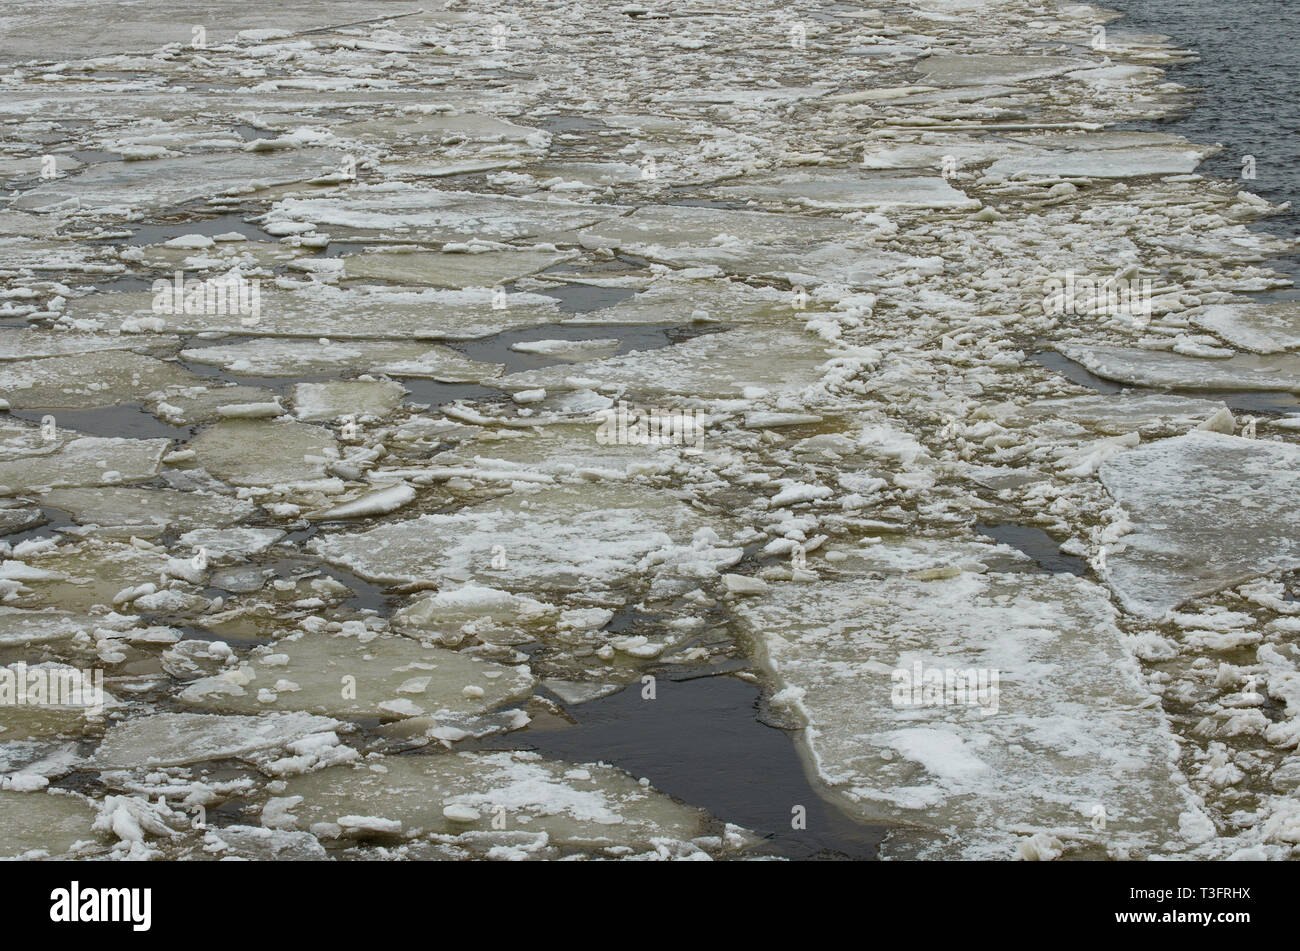 Floating cracked ice and sludge on river - Stock Image